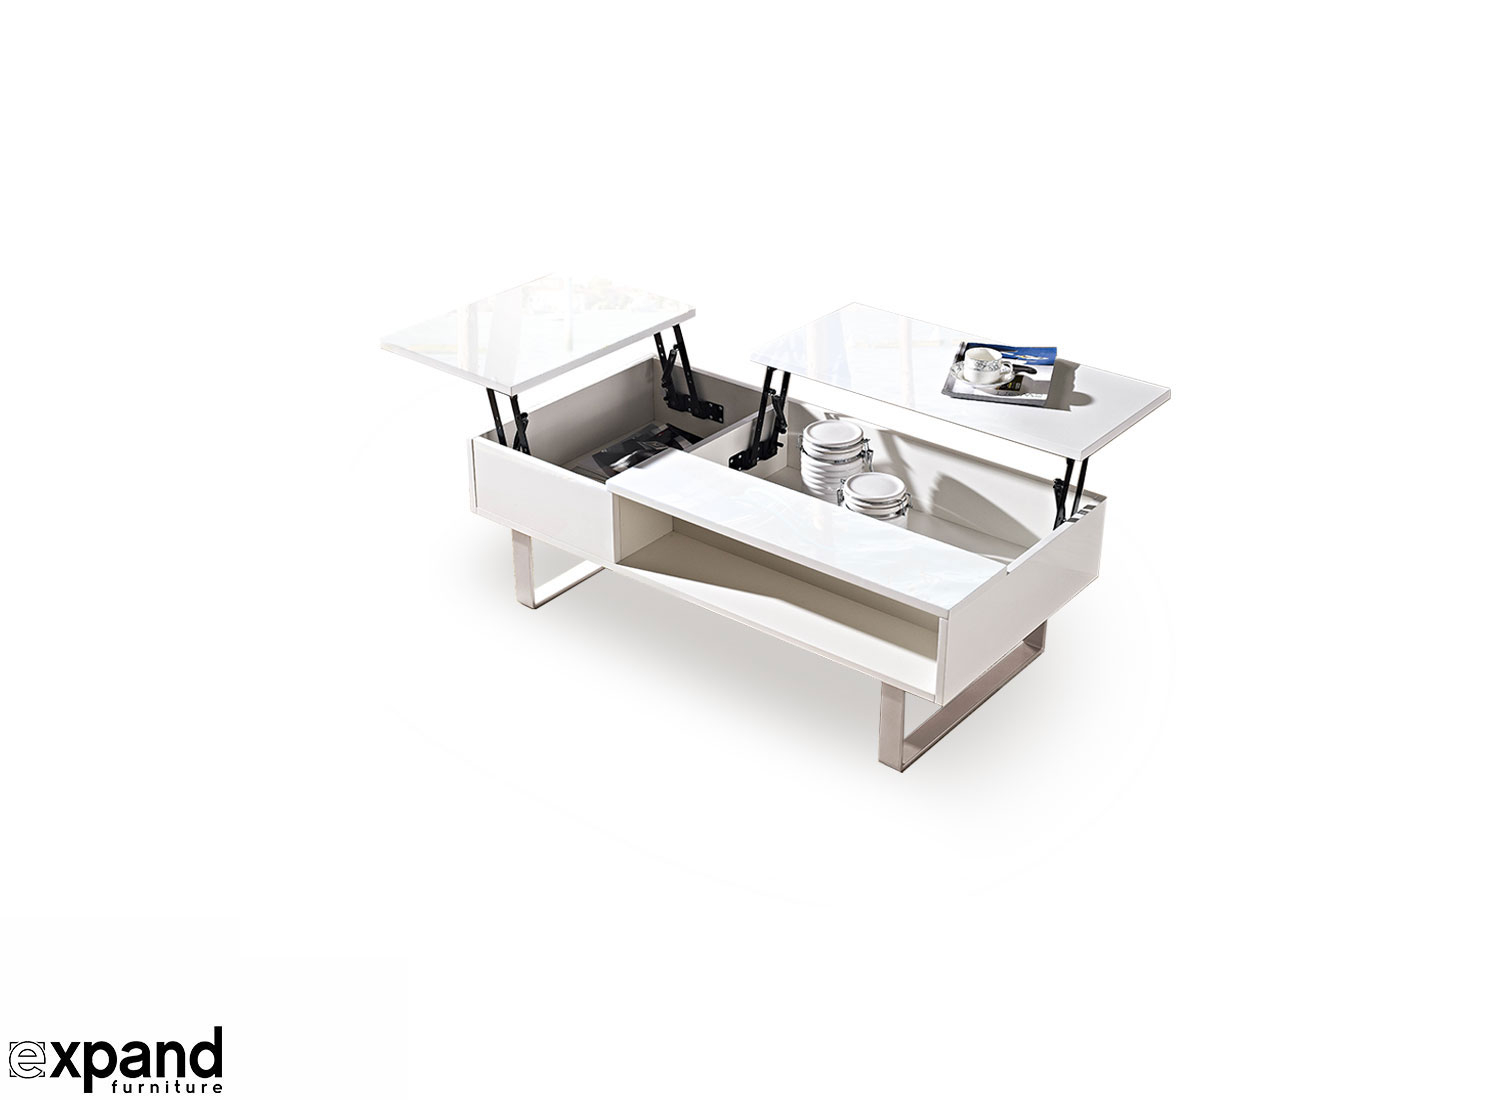 Occam Coffee Table With Lift Top Expand Furniture regarding measurements 1500 X 1100